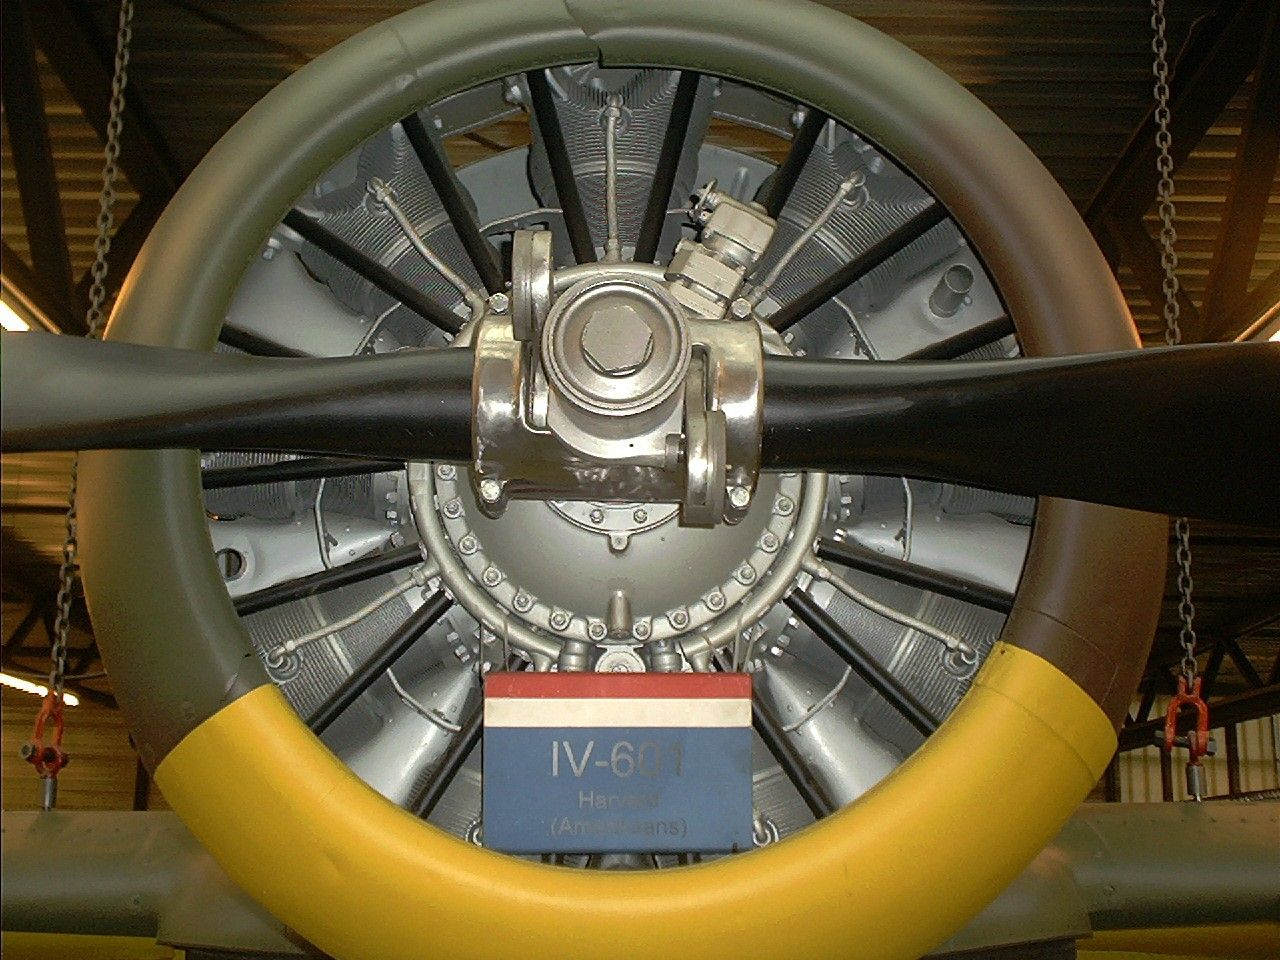 The 100 hour Radial Engine Annual Inspection Series - Compression